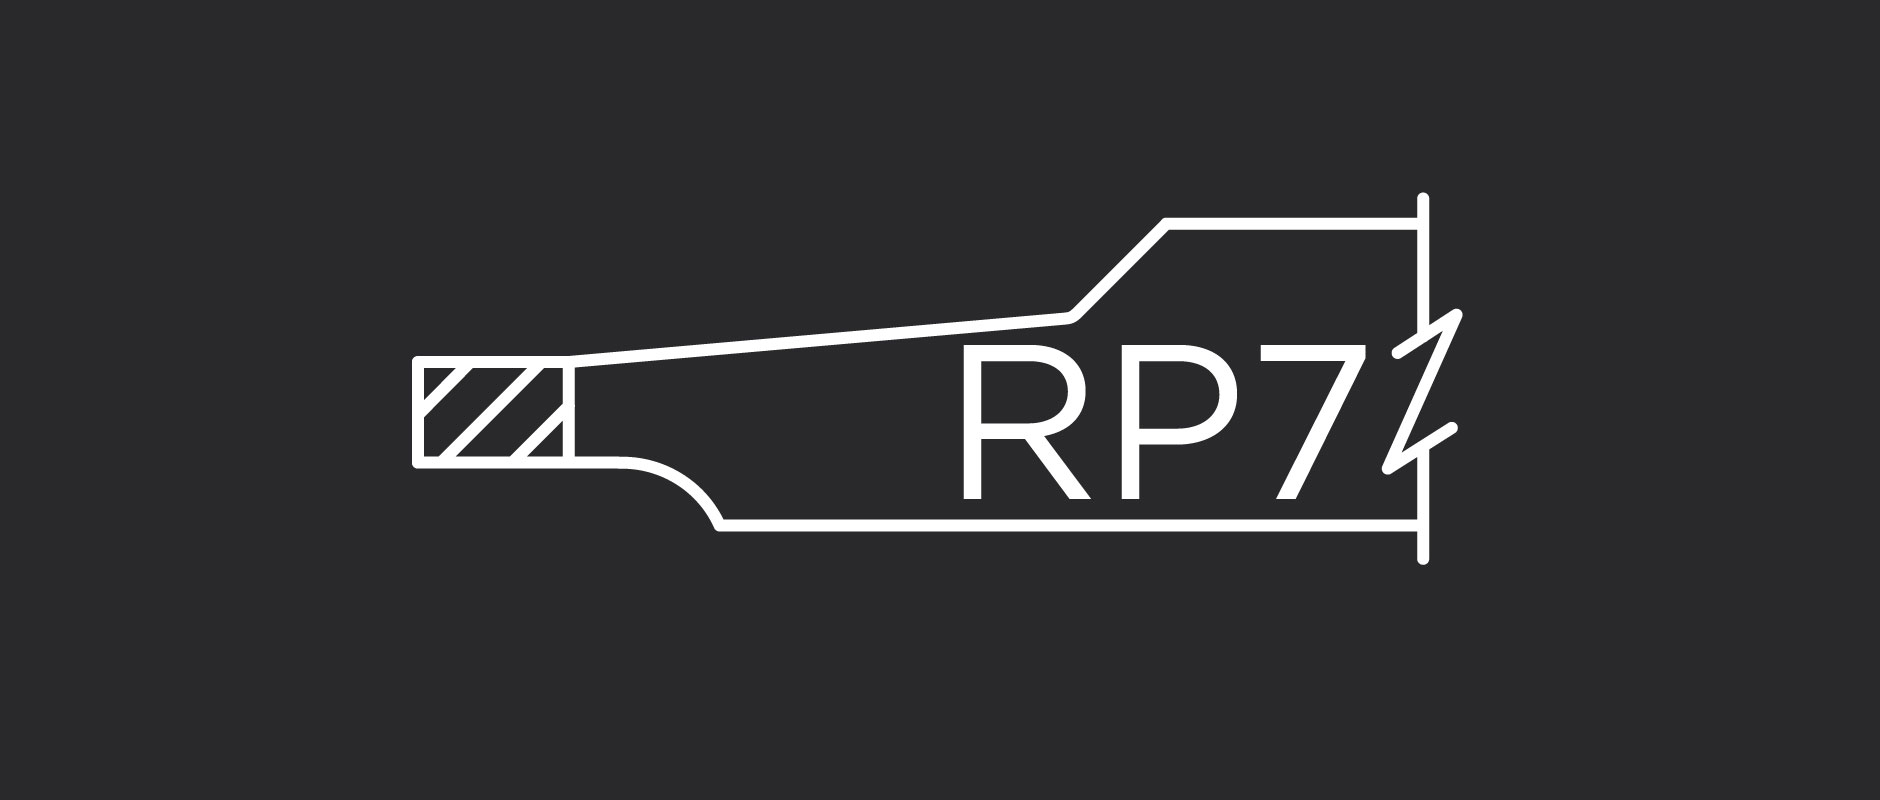 RP7 raised panel profile